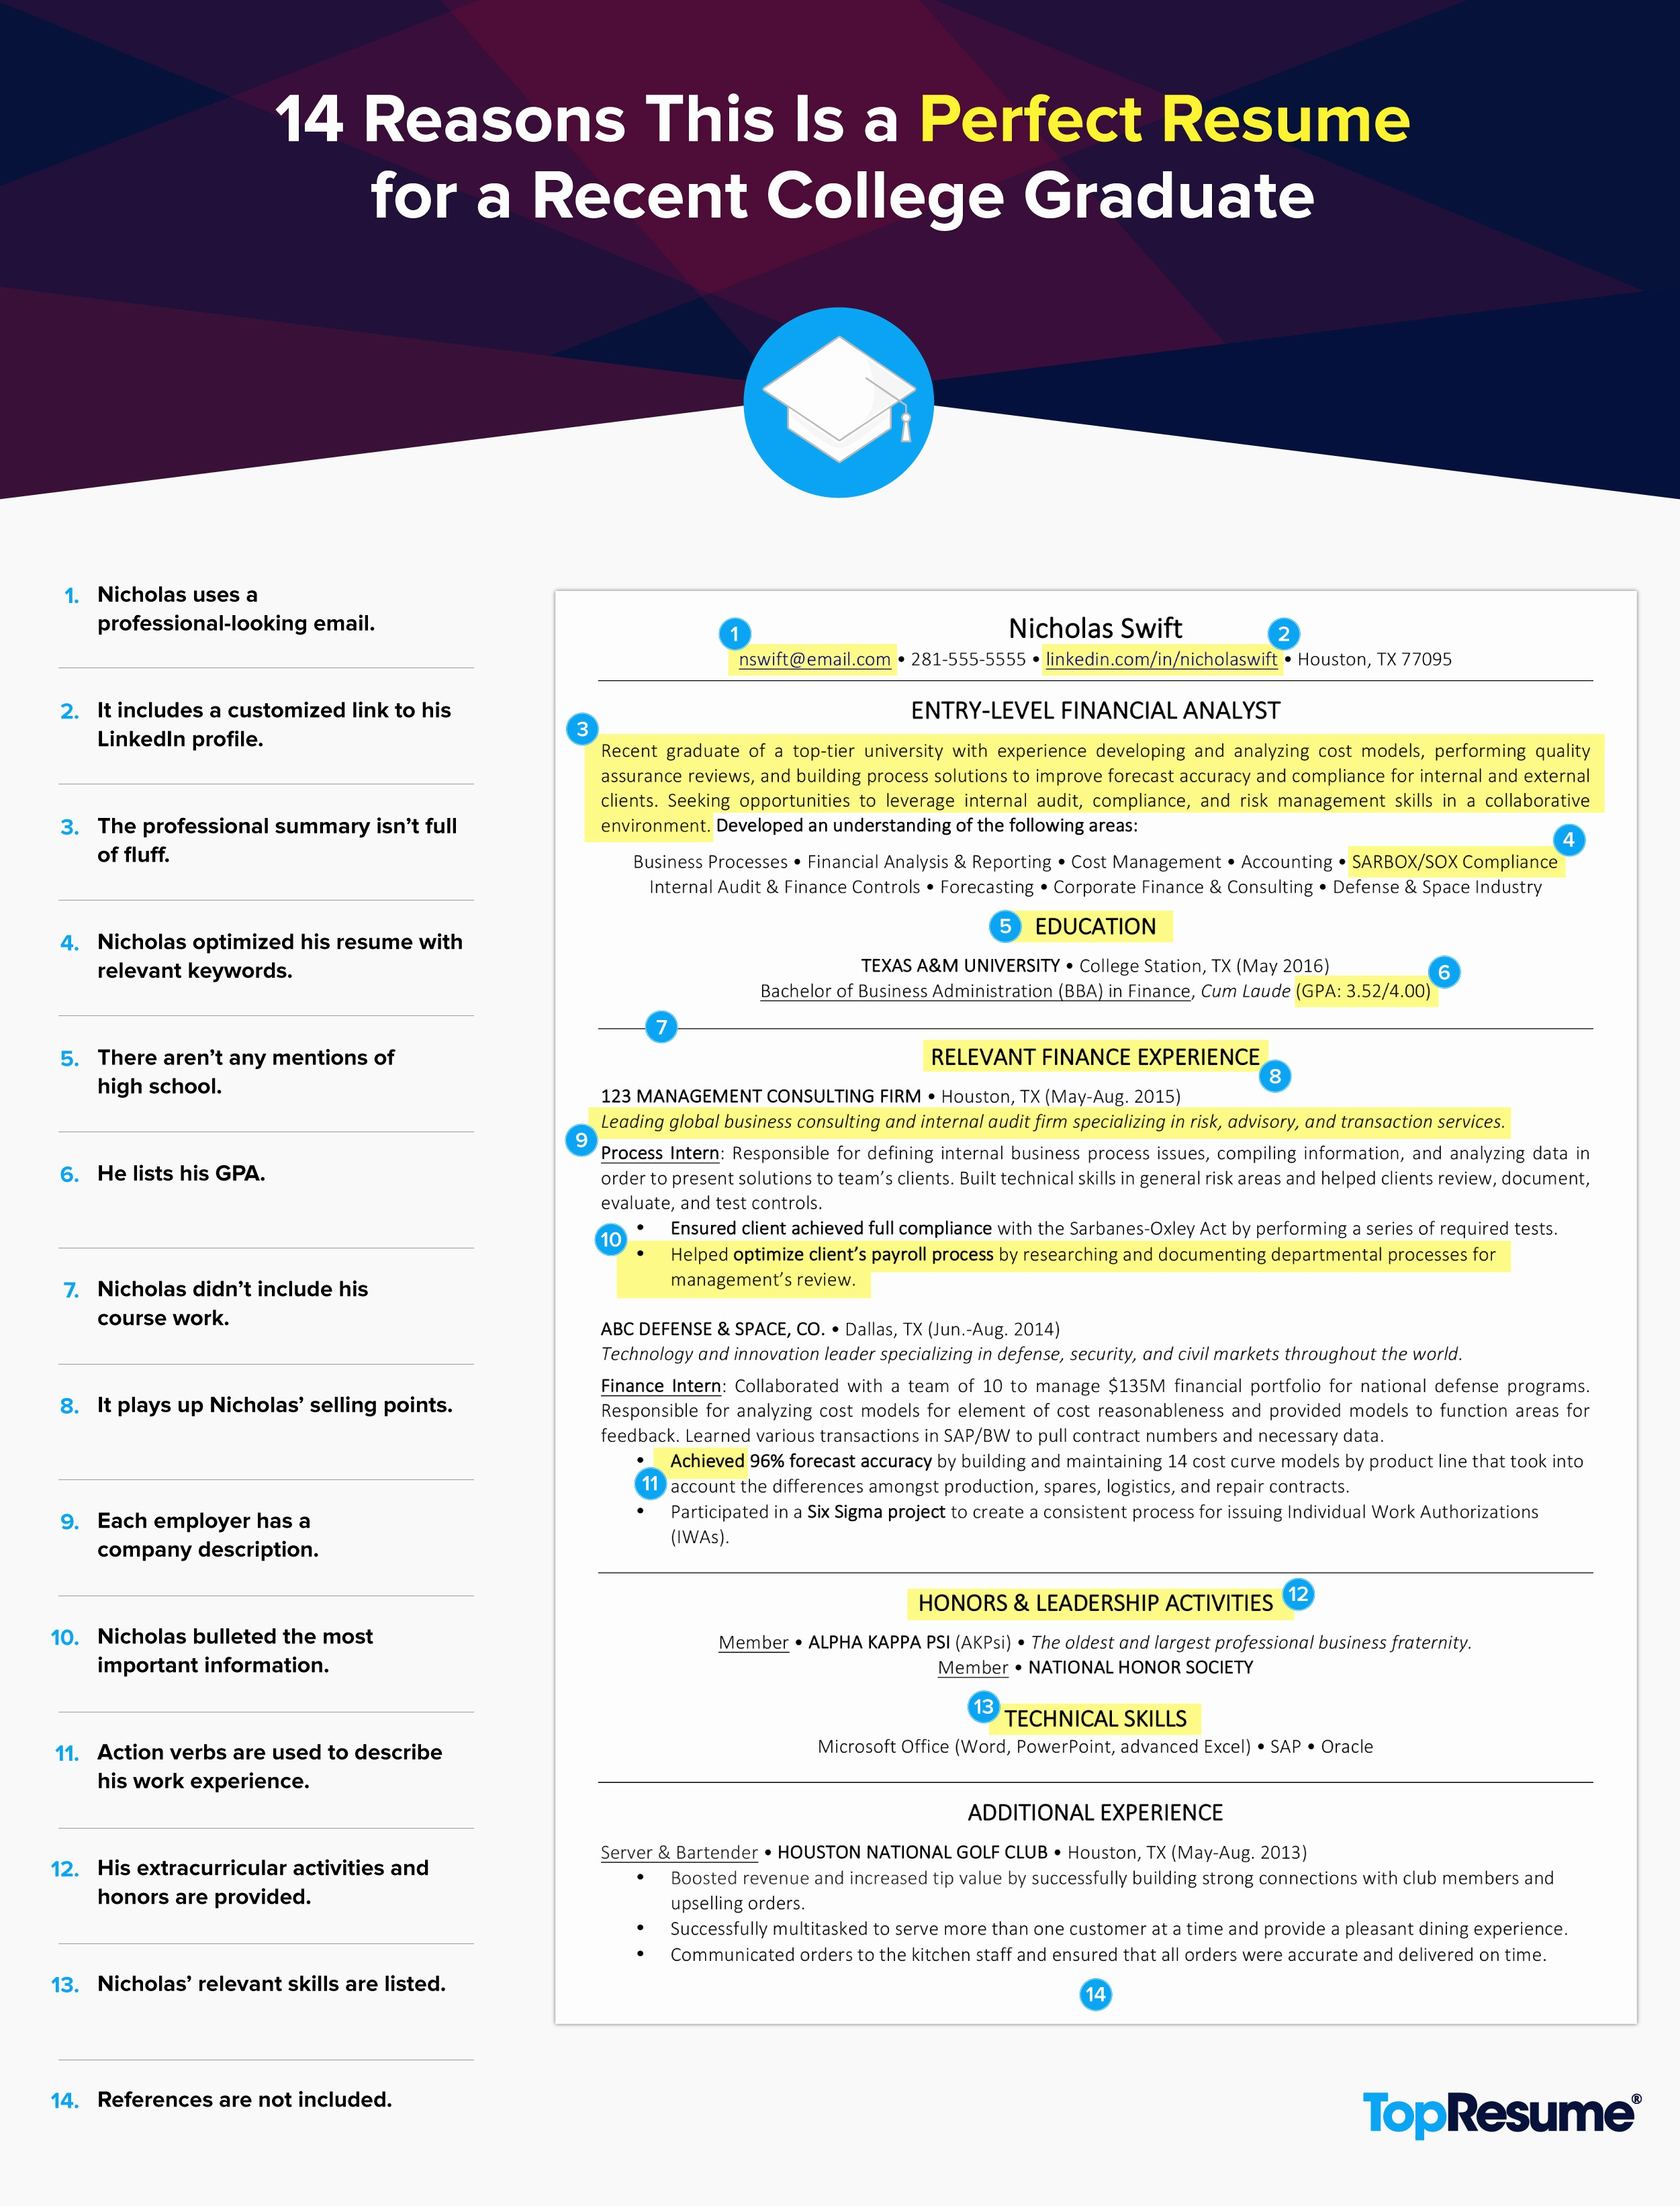 Resumes for New College Graduates Luxury 14 Reasons This is A Perfect Recent College Graduate